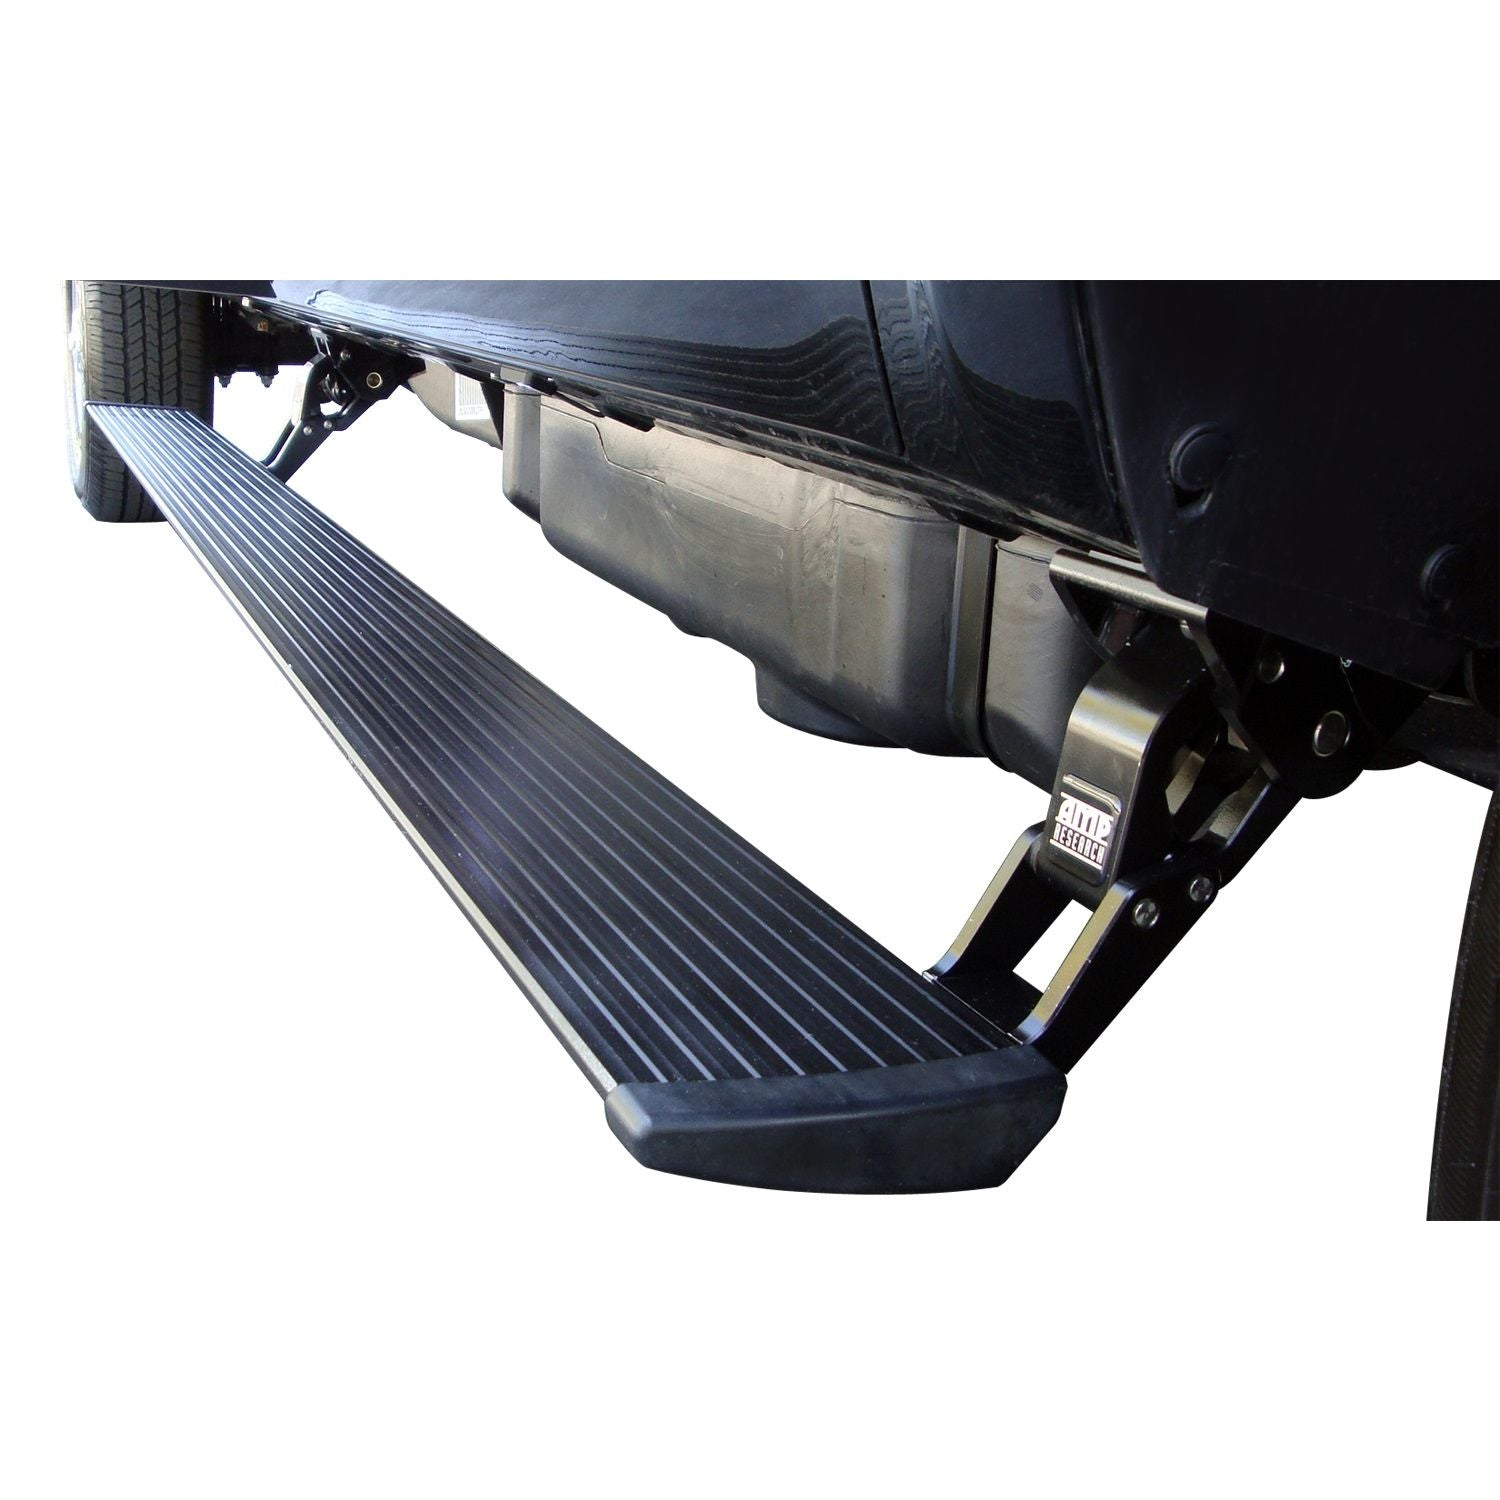 AMP Research PowerStep Electric Running Boards for 2011-2014 Chevrolet Silverado/GMC Sierra 2500/3500 Diesel Only Extended/Crew Cab - 75146-01A